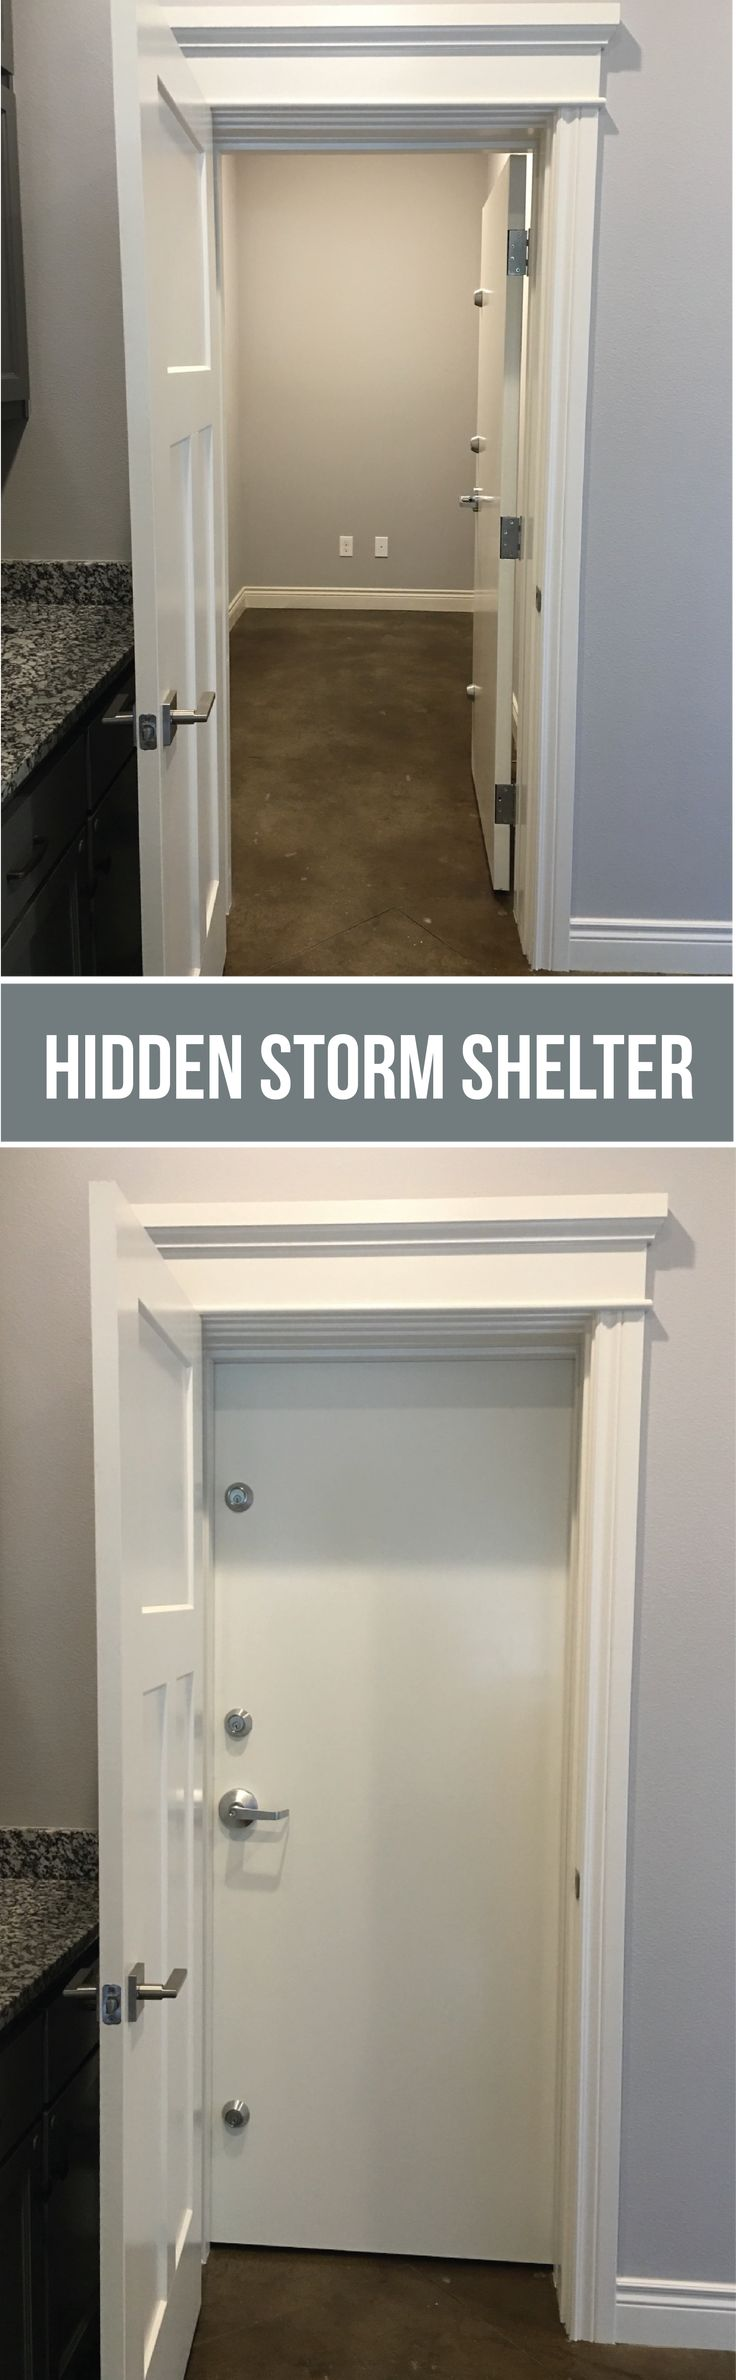 Best 25 storm shelters ideas on pinterest tornado for Hidden storm shelter